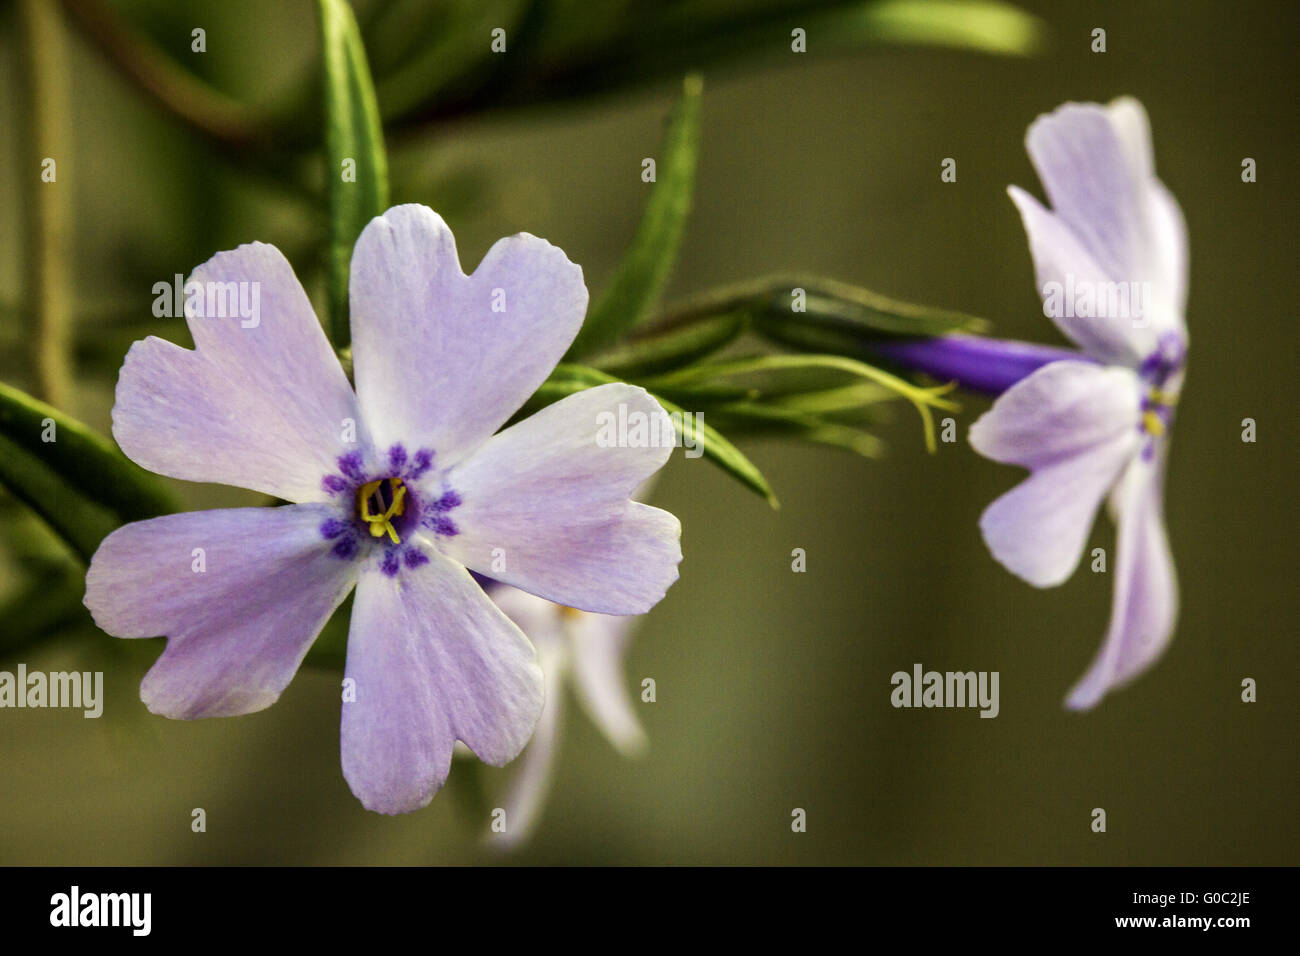 Closeup of a Pretty Pink and Purple Flower with Green Bokeh Background - Stock Image